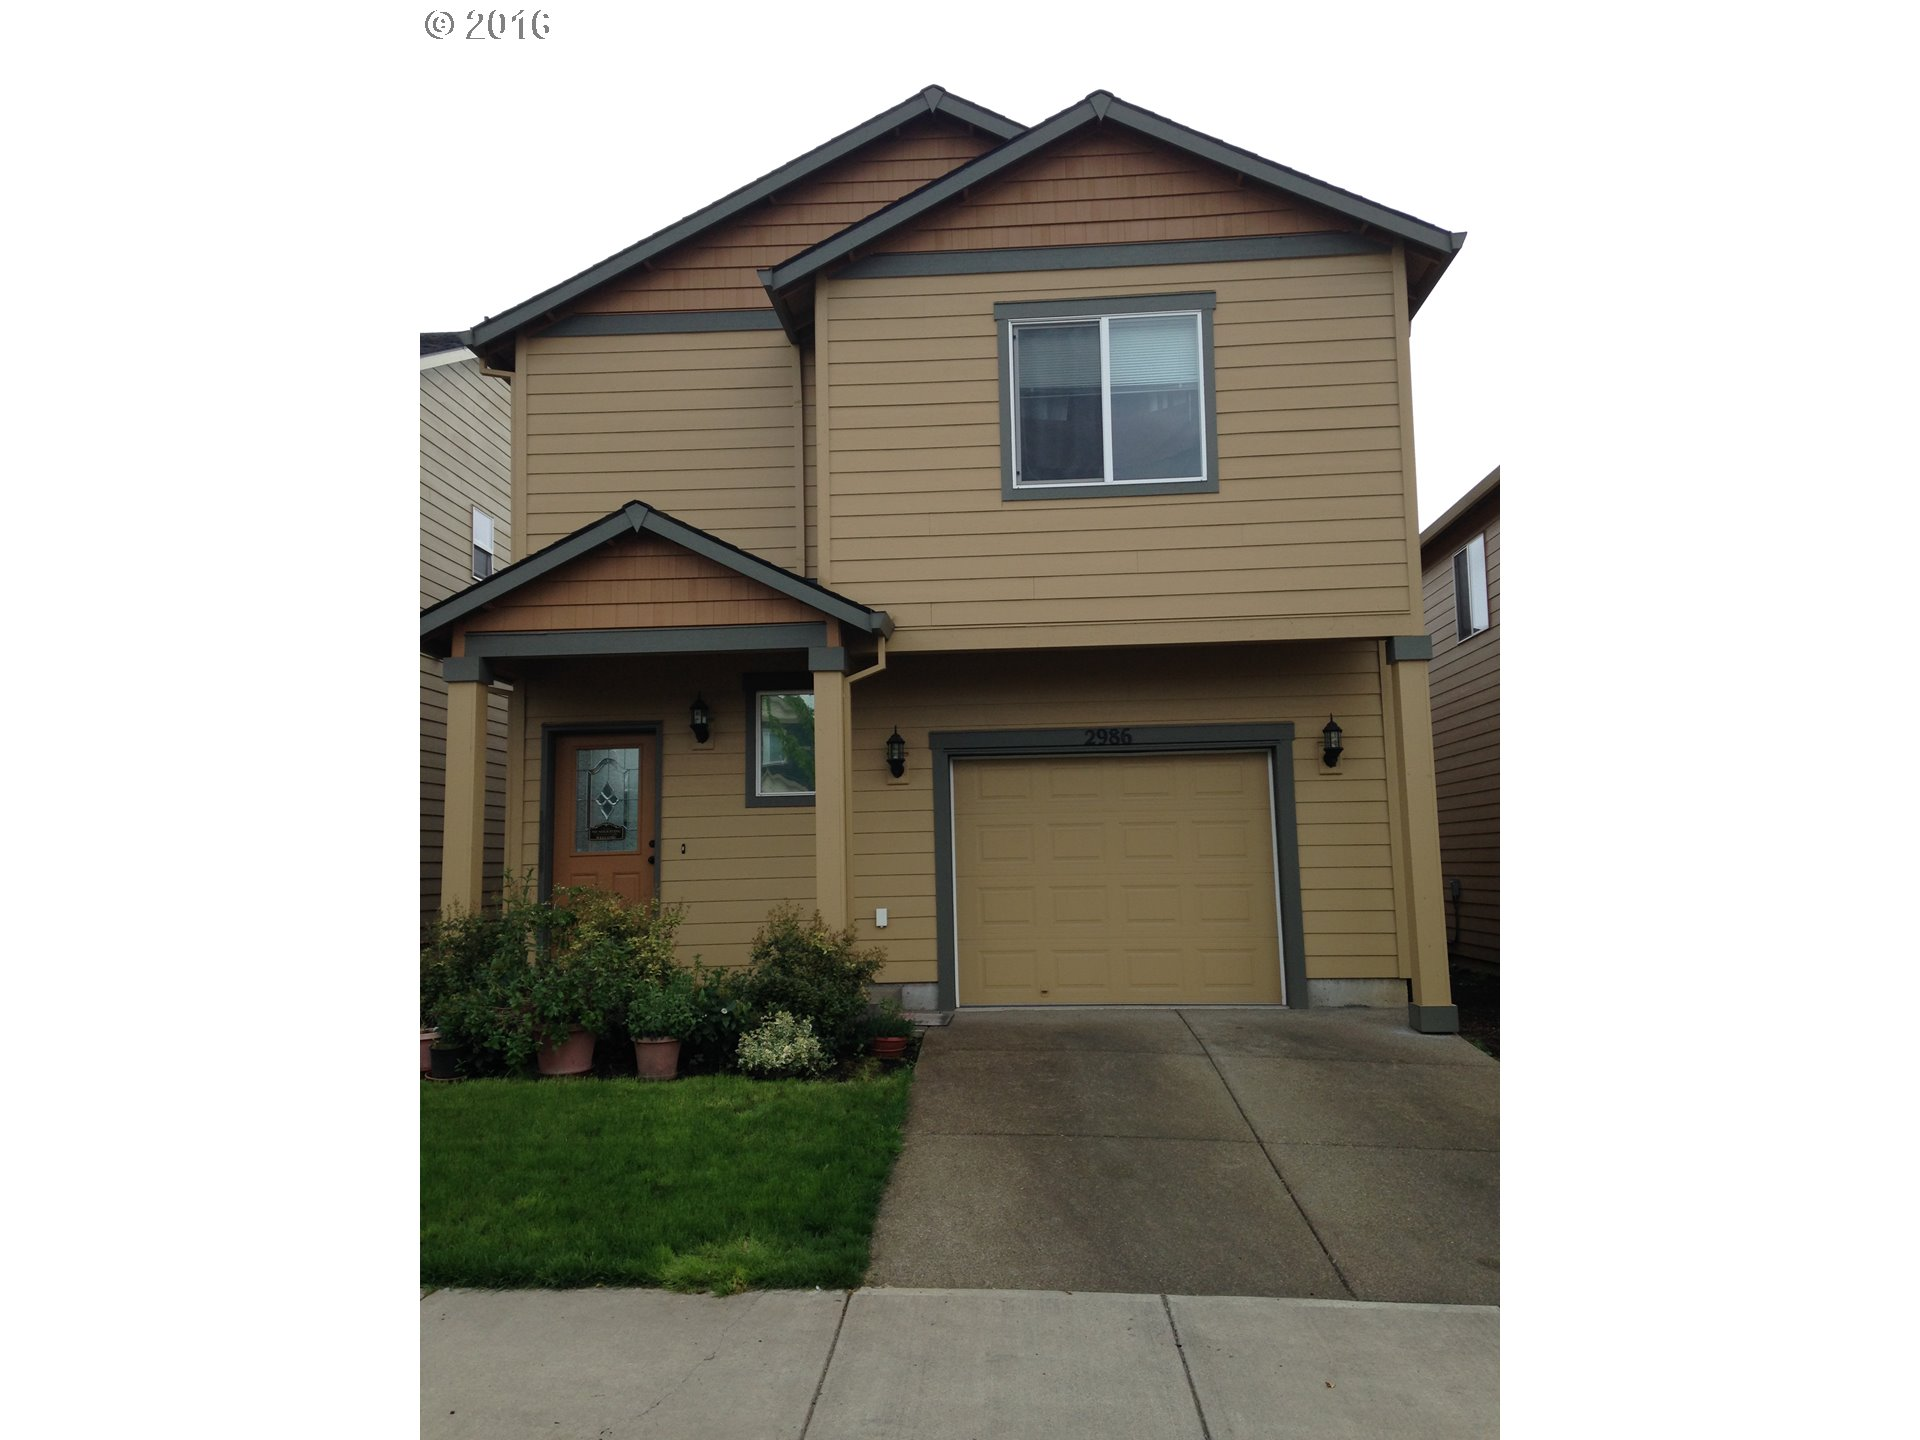 2986 26th Ave, Forest Grove, OR